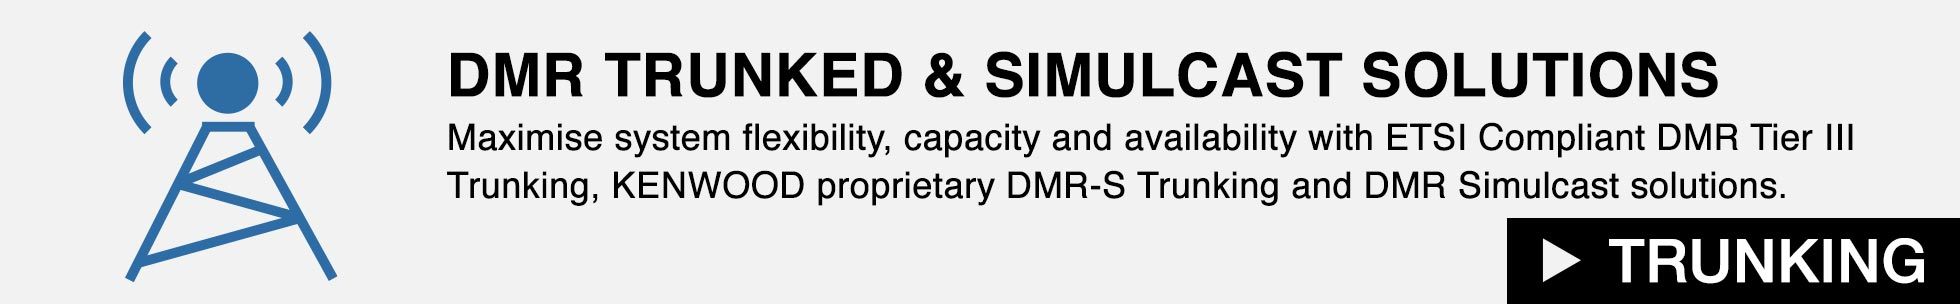 DMR Trunked and Simulcast Solutions